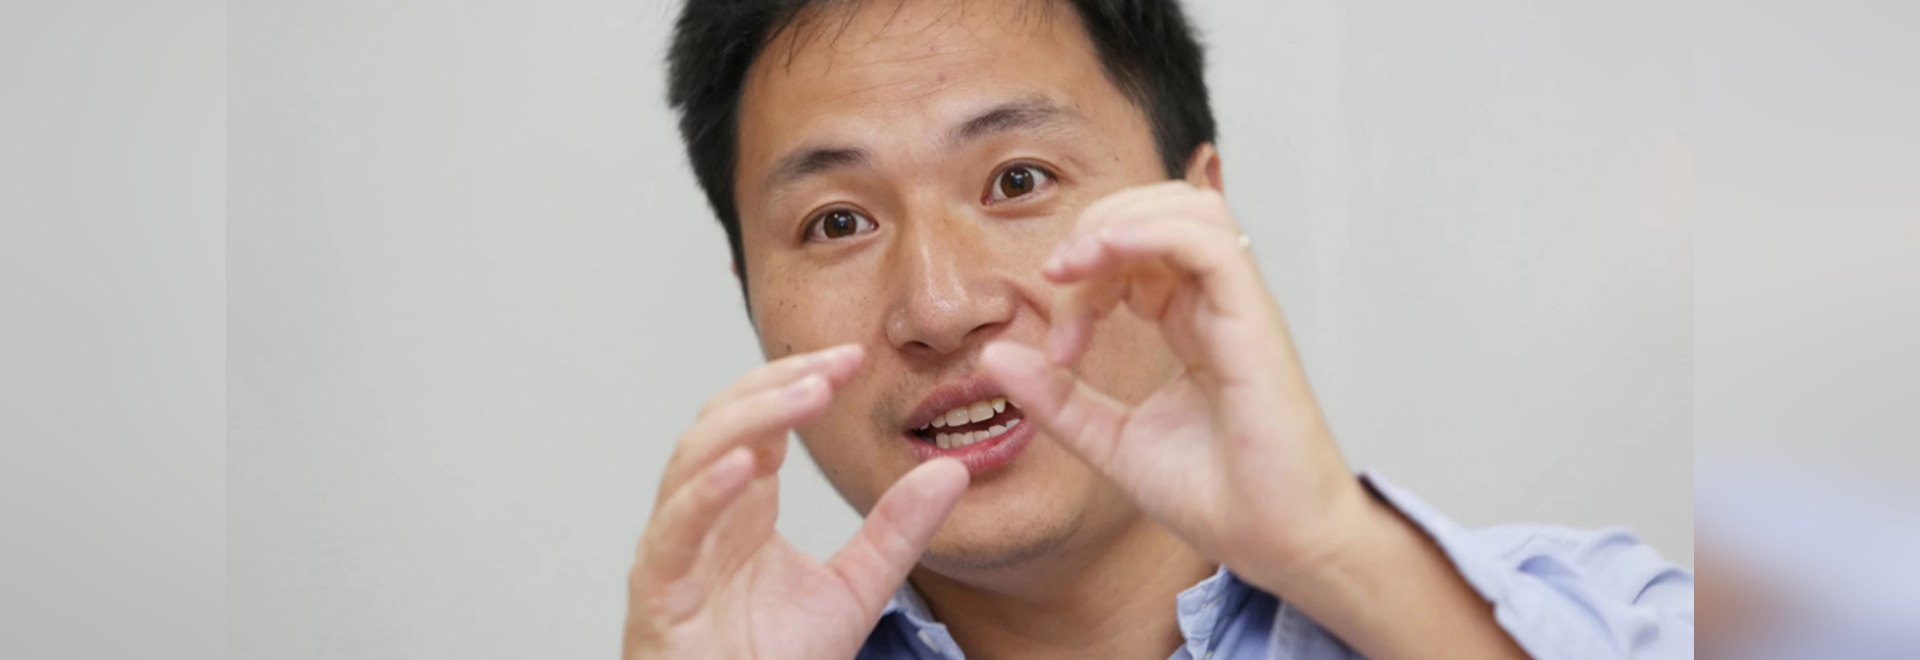 Scientist He Jiankui speaks at his company Direct Genomics in Shenzhen, China, on July 18, 2017.